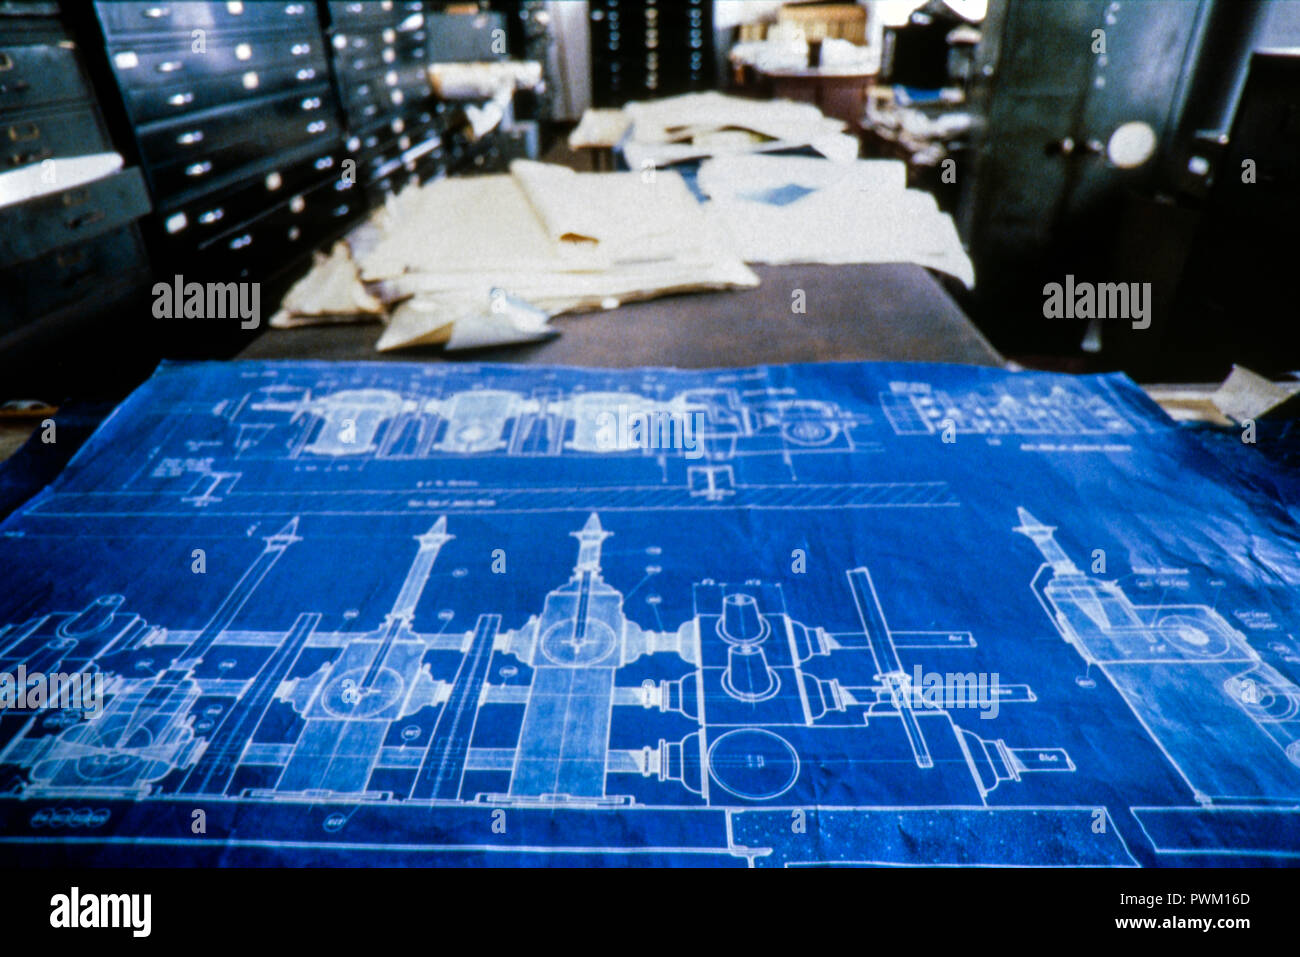 Battersea Power Station - 4th Floor Office and Blueprint March 1988 - Stock Image